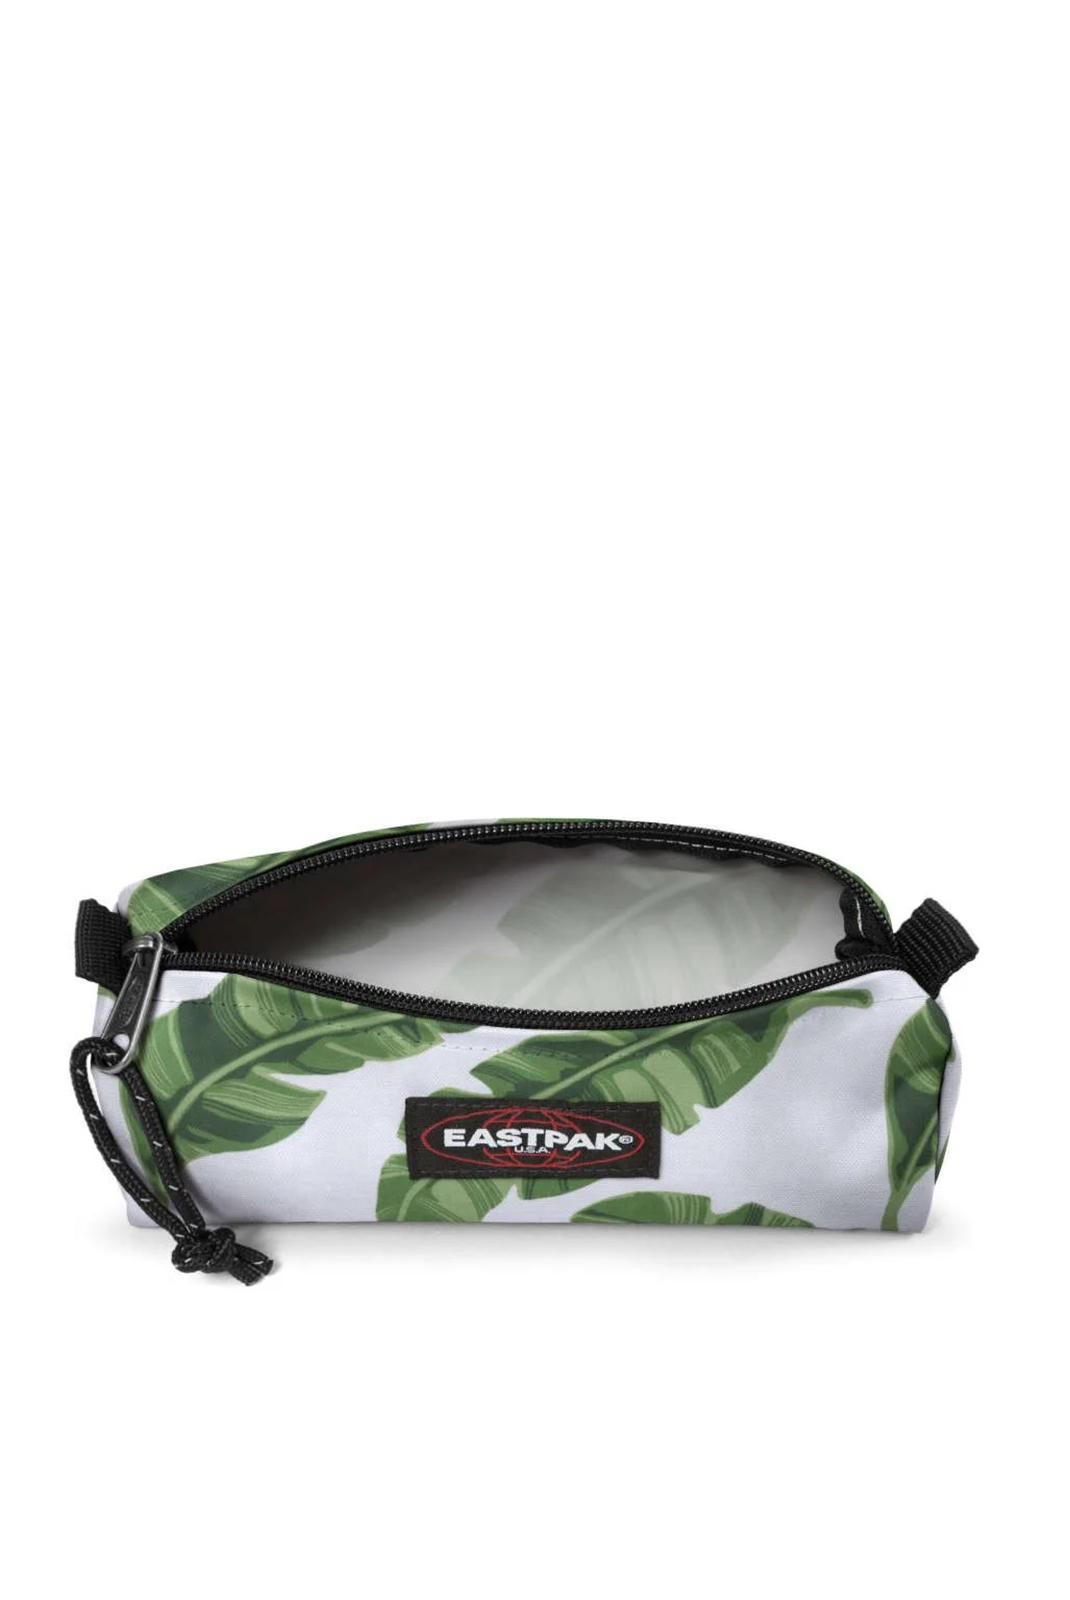 Etuis / Trousses  Eastpak EK372C11 C11 Brize Leaves Natural